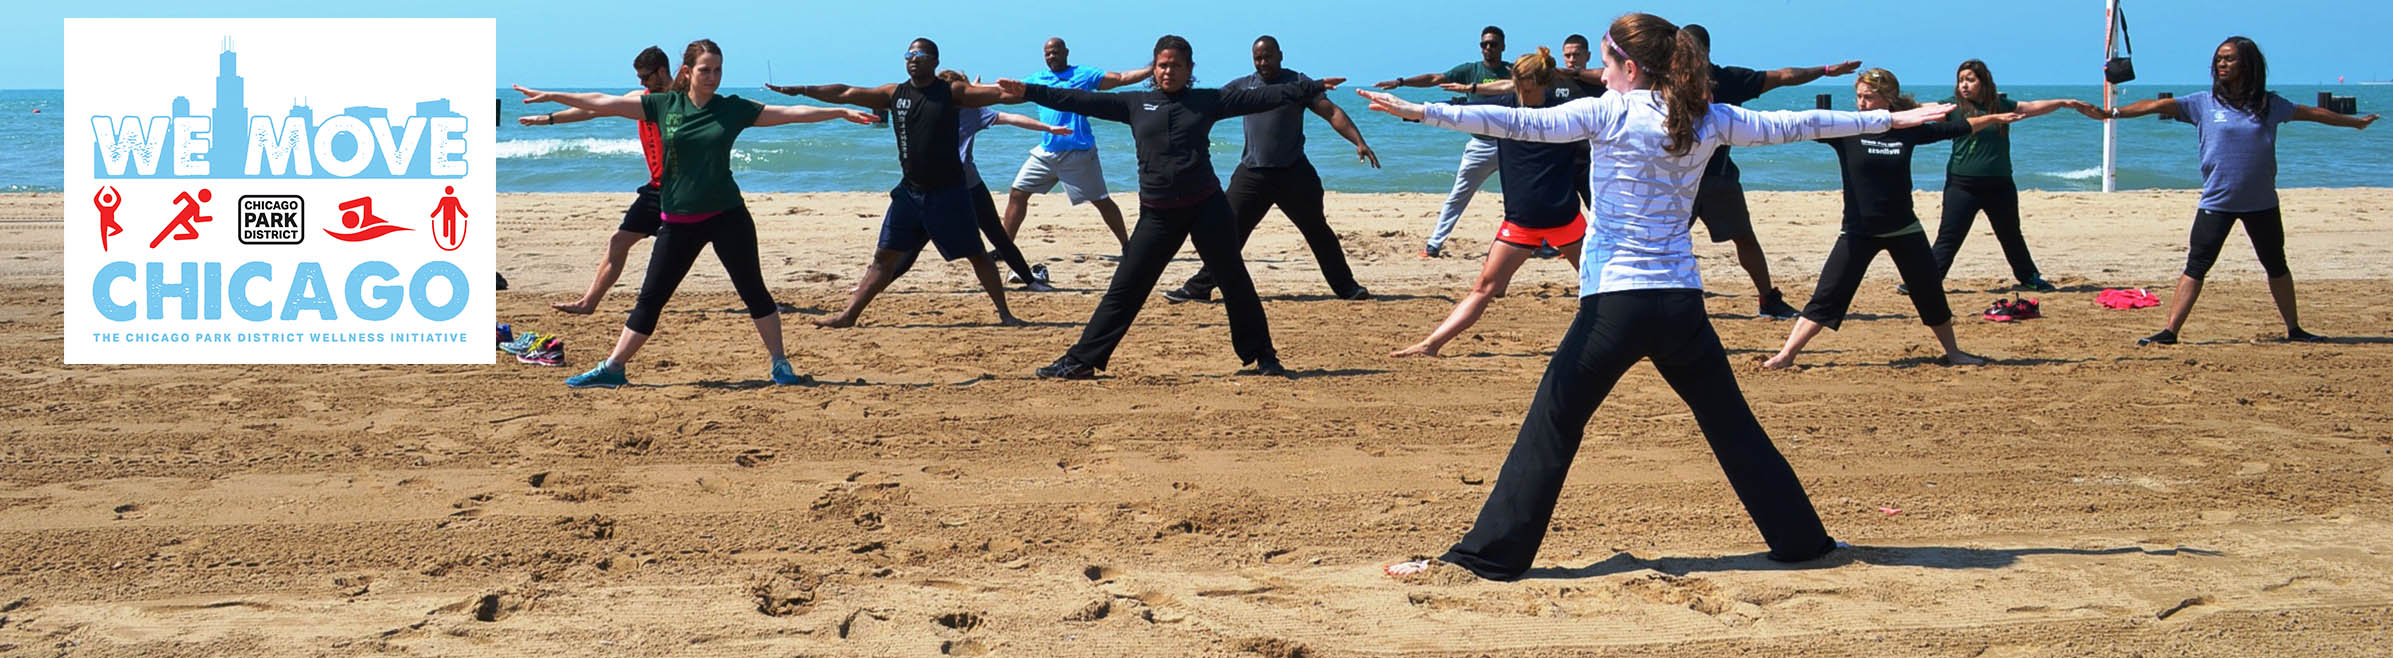 A group of adults enjoys a workout on the beach as part of the We Move Chicago program.